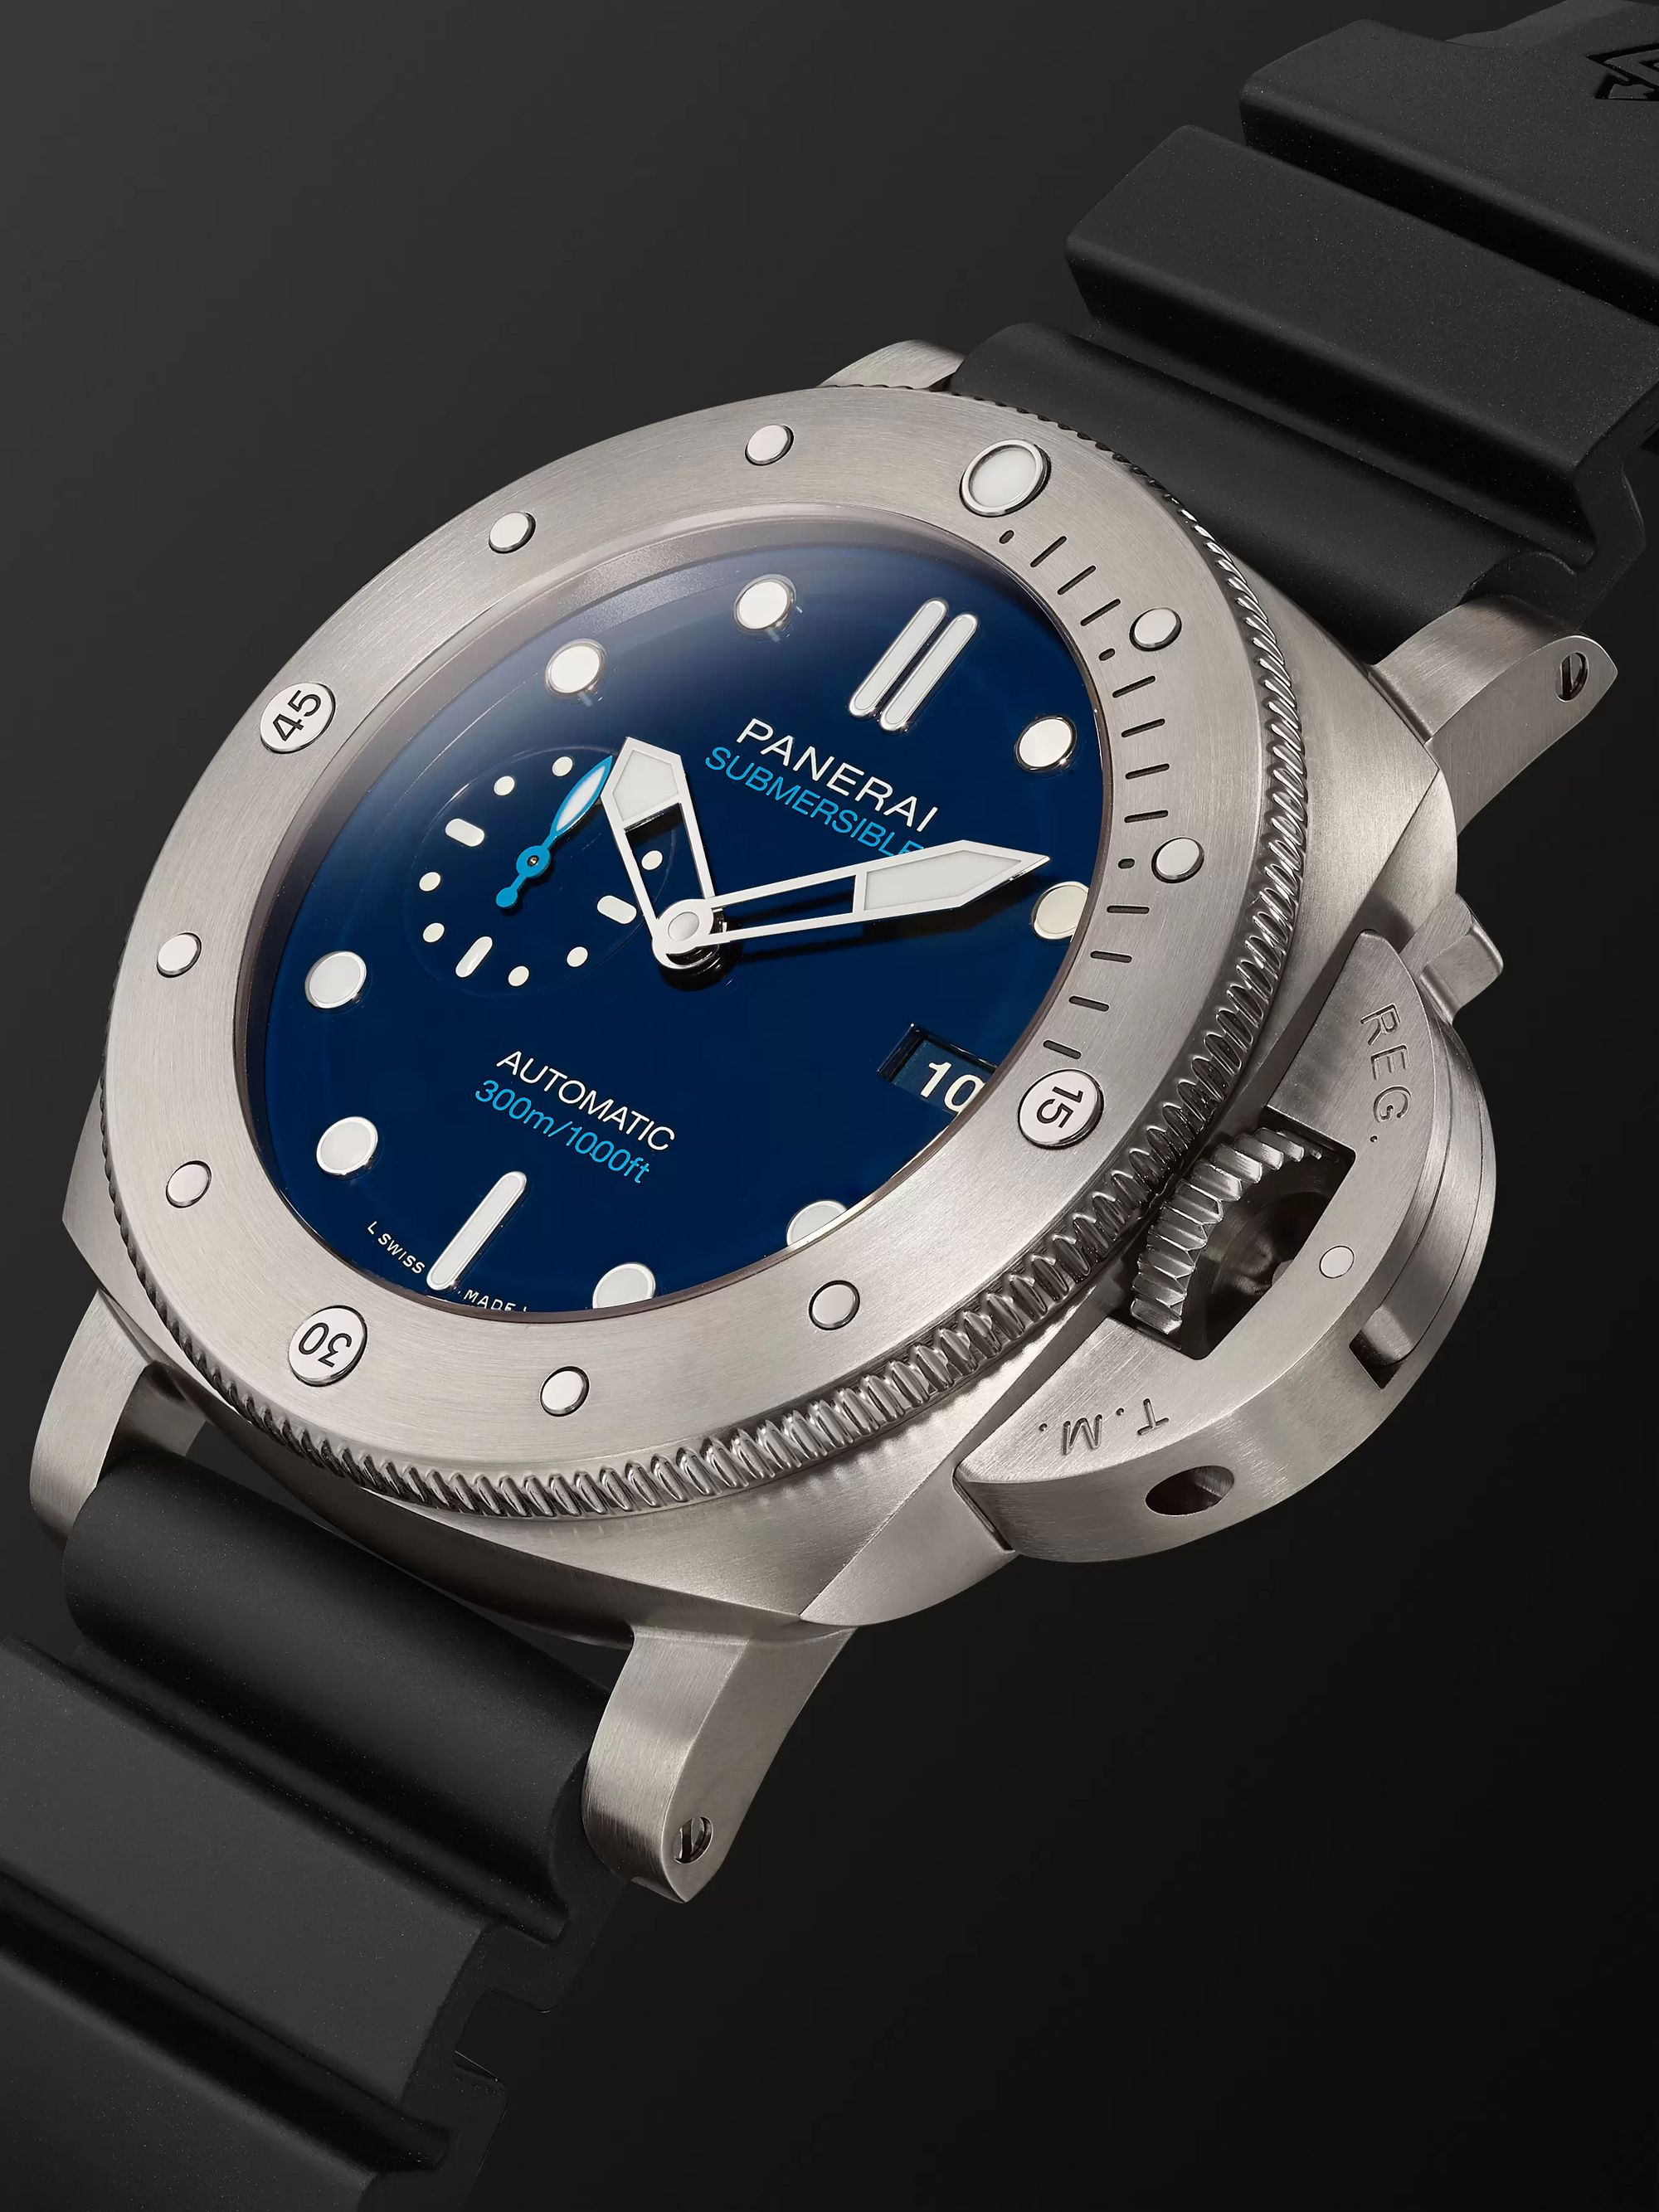 Panerai Submersible Automatic 47mm BMG-TECH and Rubber Watch